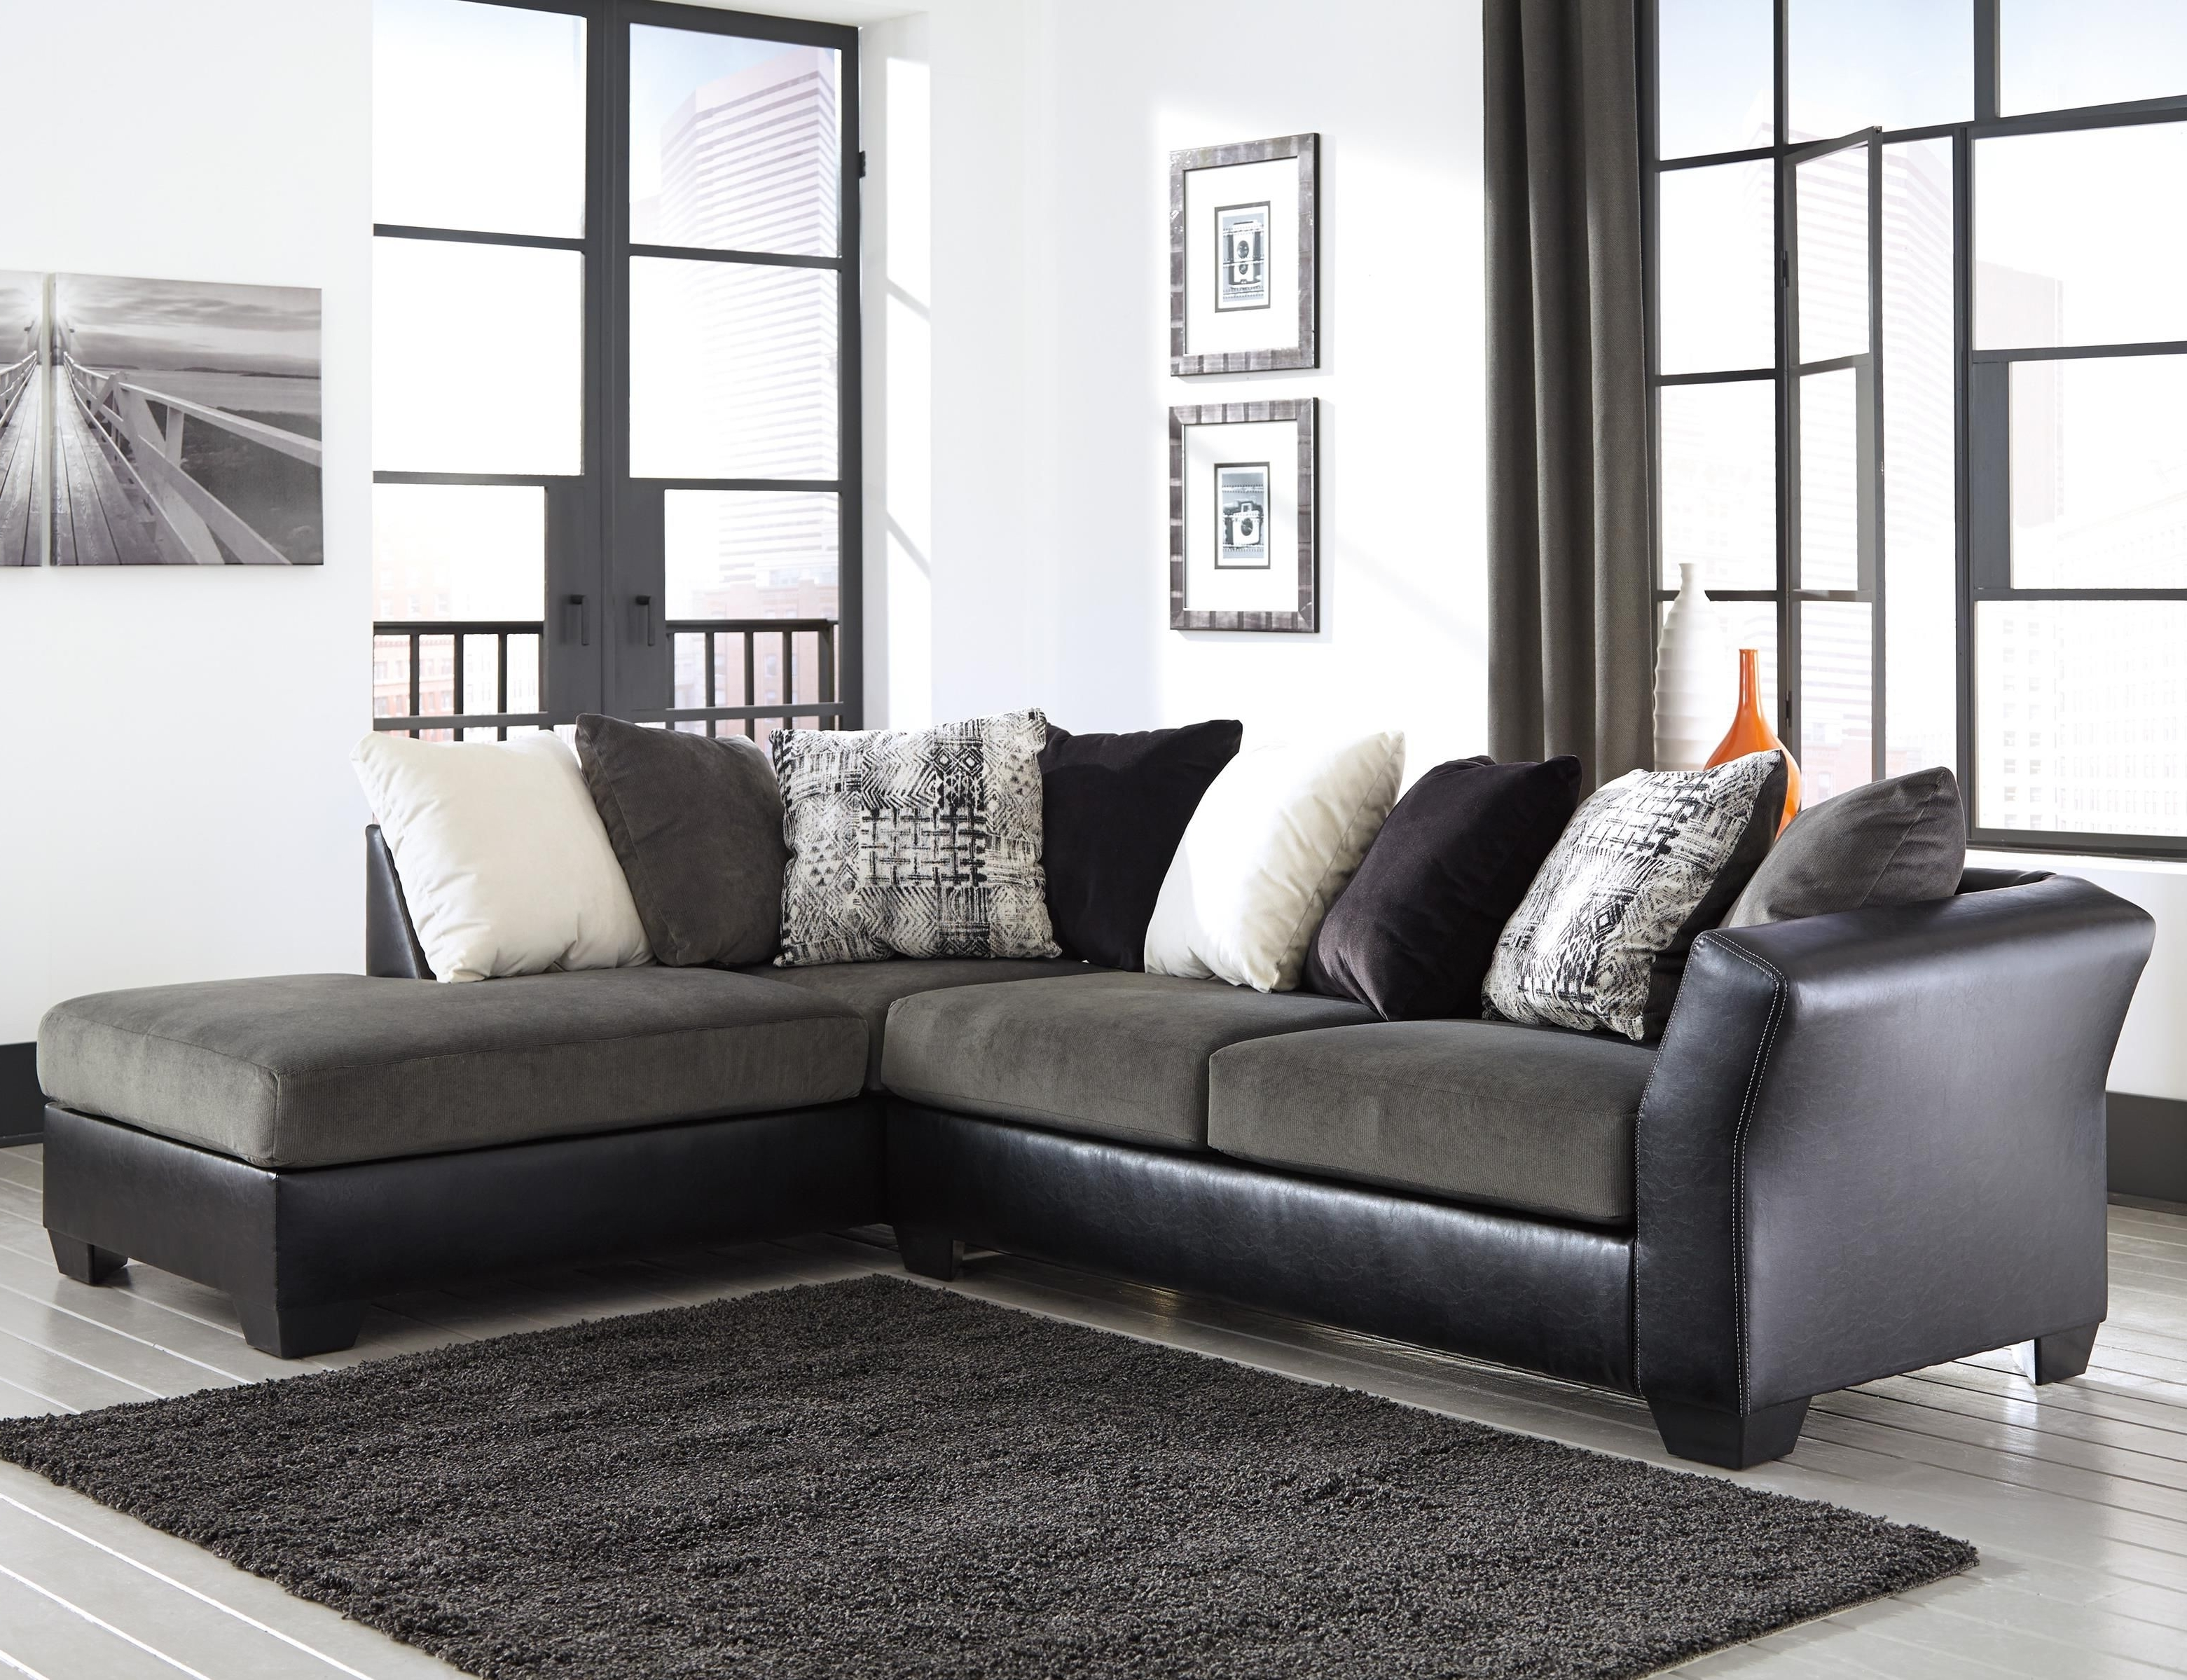 Gainesville Fl Sectional Sofas Throughout Most Recently Released Armant 2 Piece Sectional With Right Chaisesignature Design (Gallery 11 of 20)